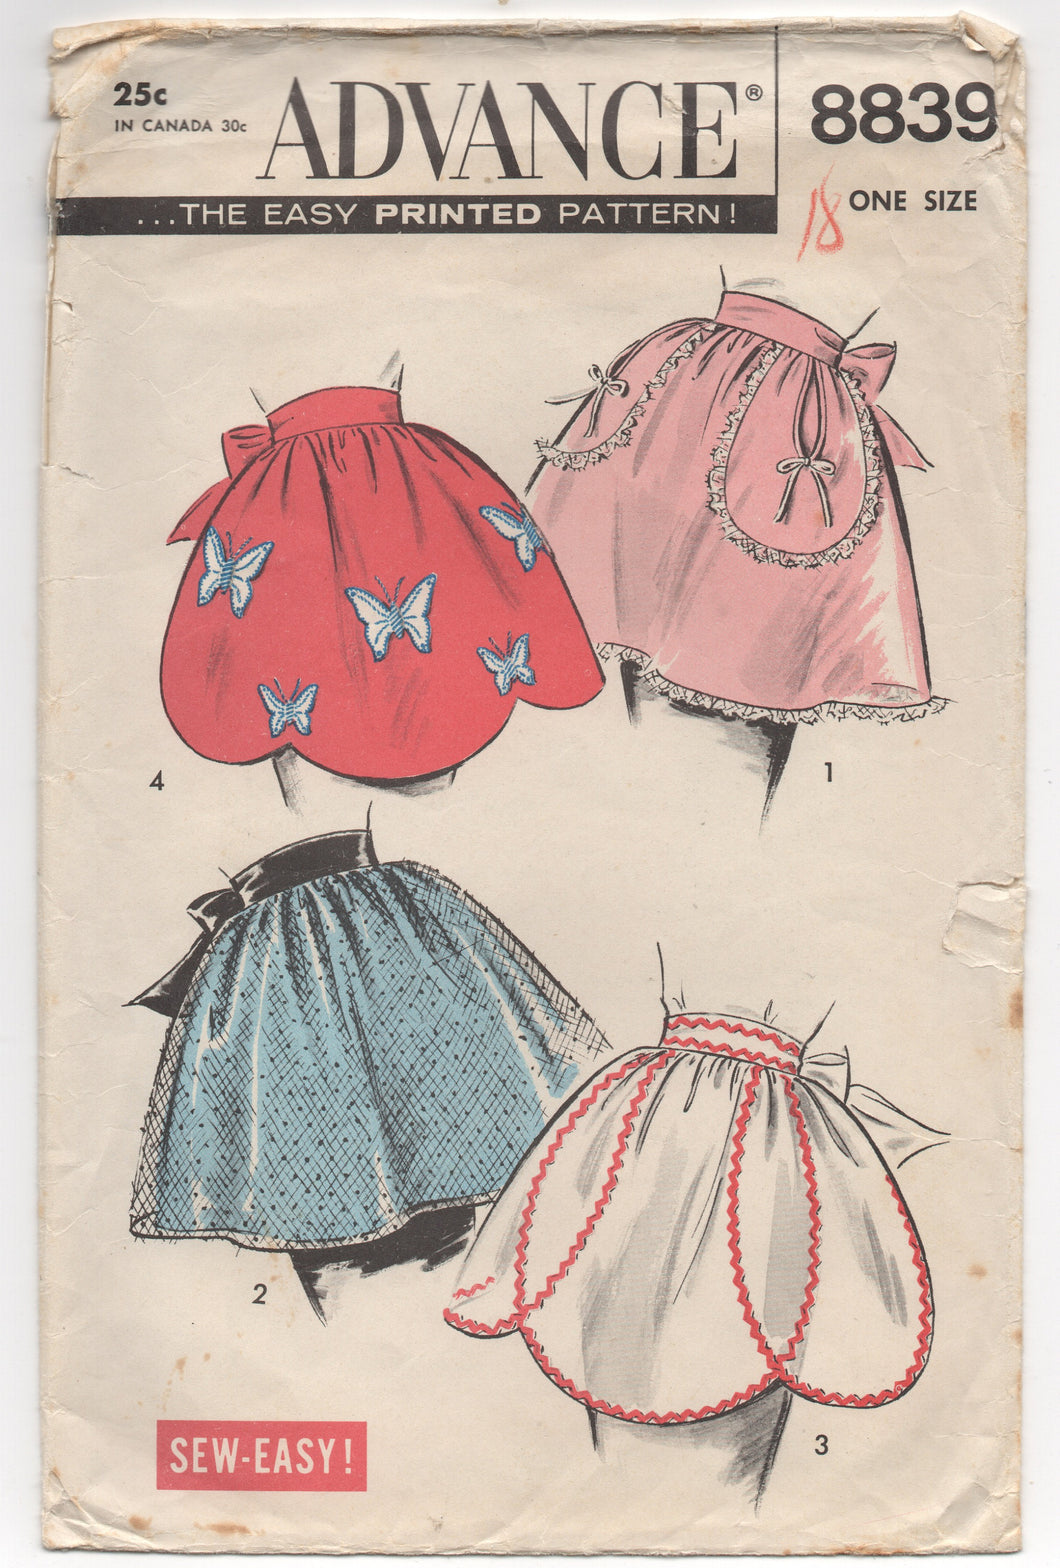 1950's Advance Half Apron with Butterfly Appliques and basket pockets - OS - No. 8839